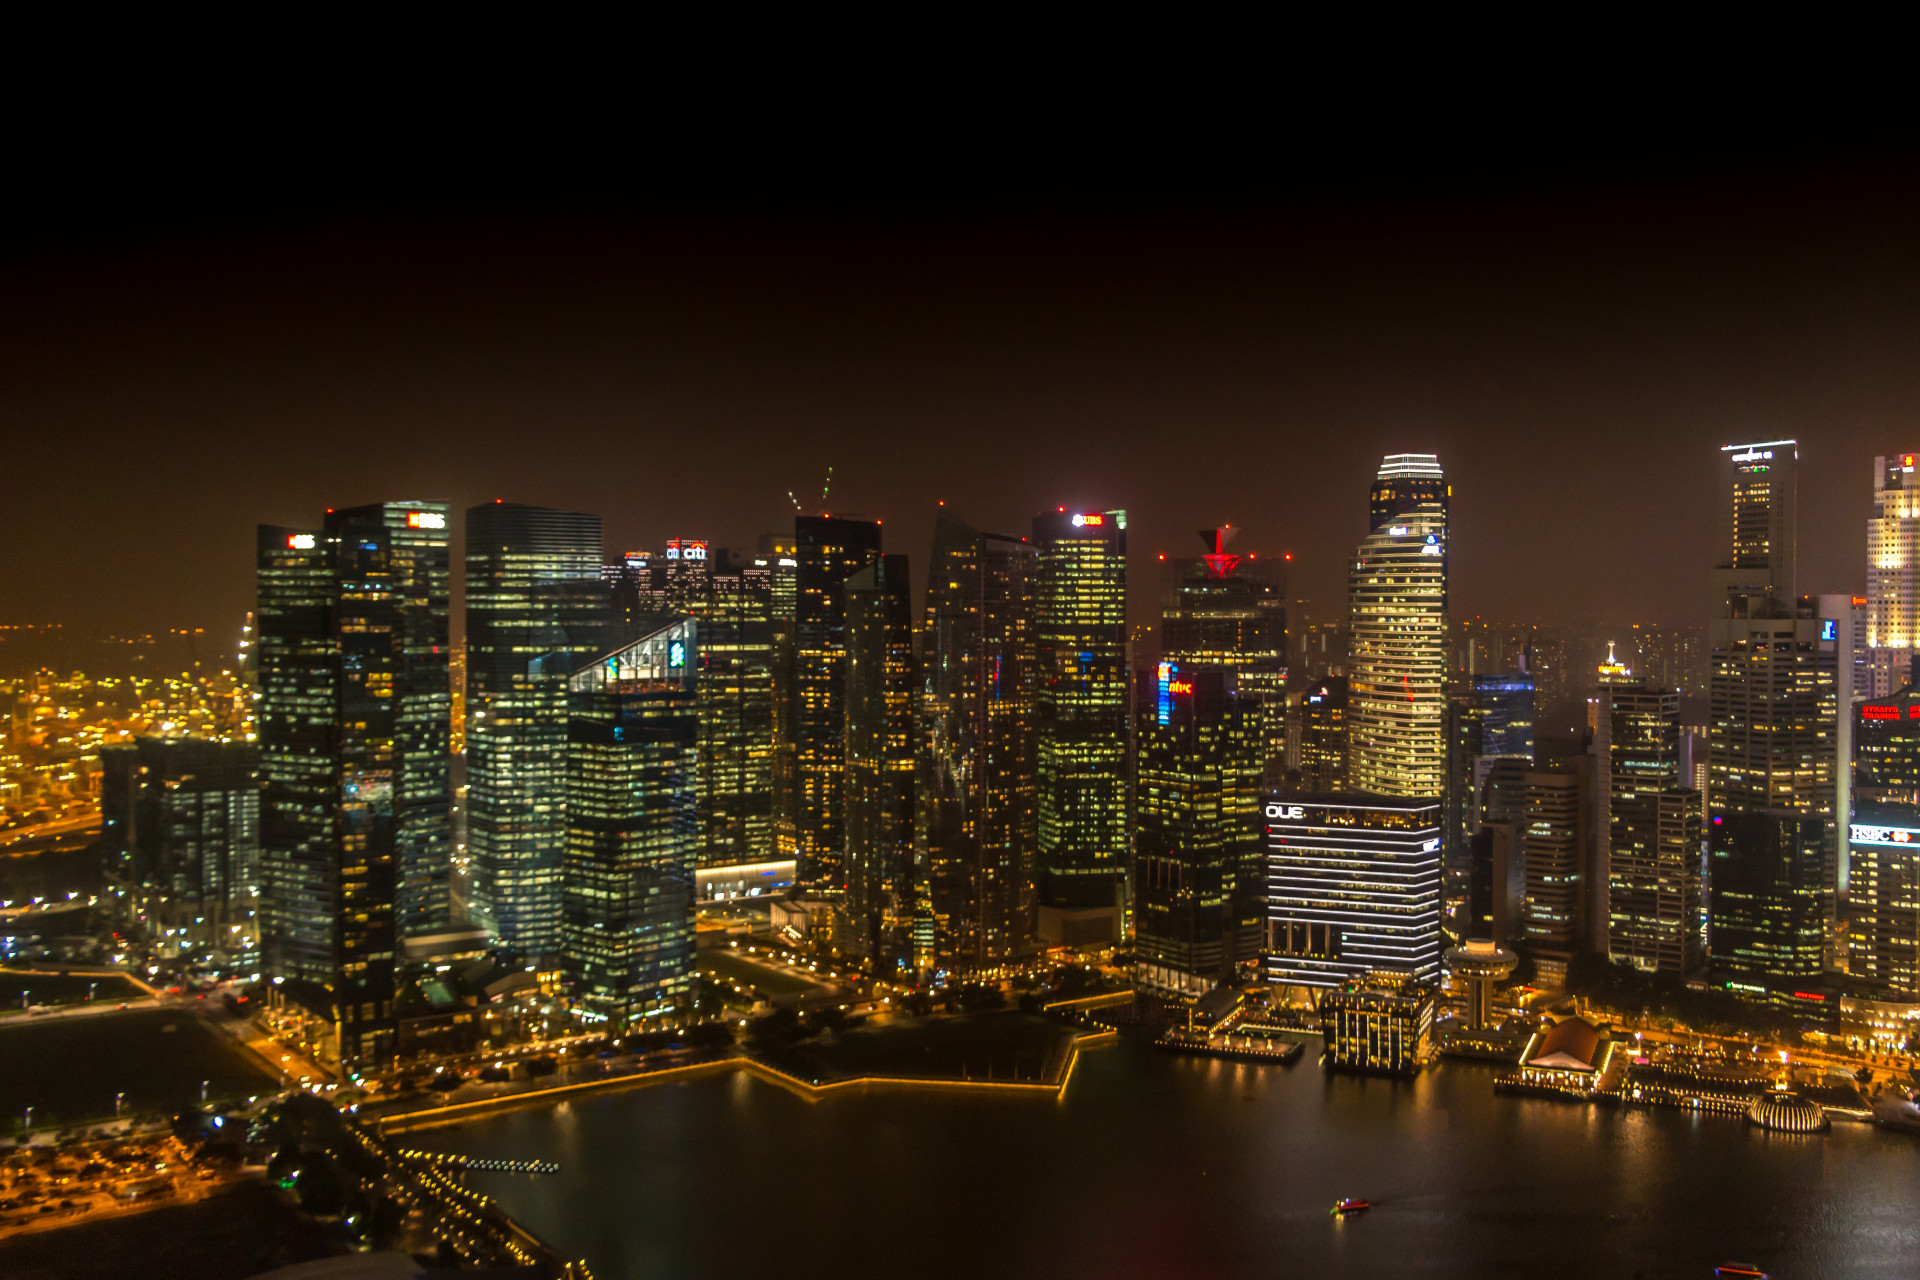 "<i class=""fa fa-film""></i>– Baie Singapour by night"